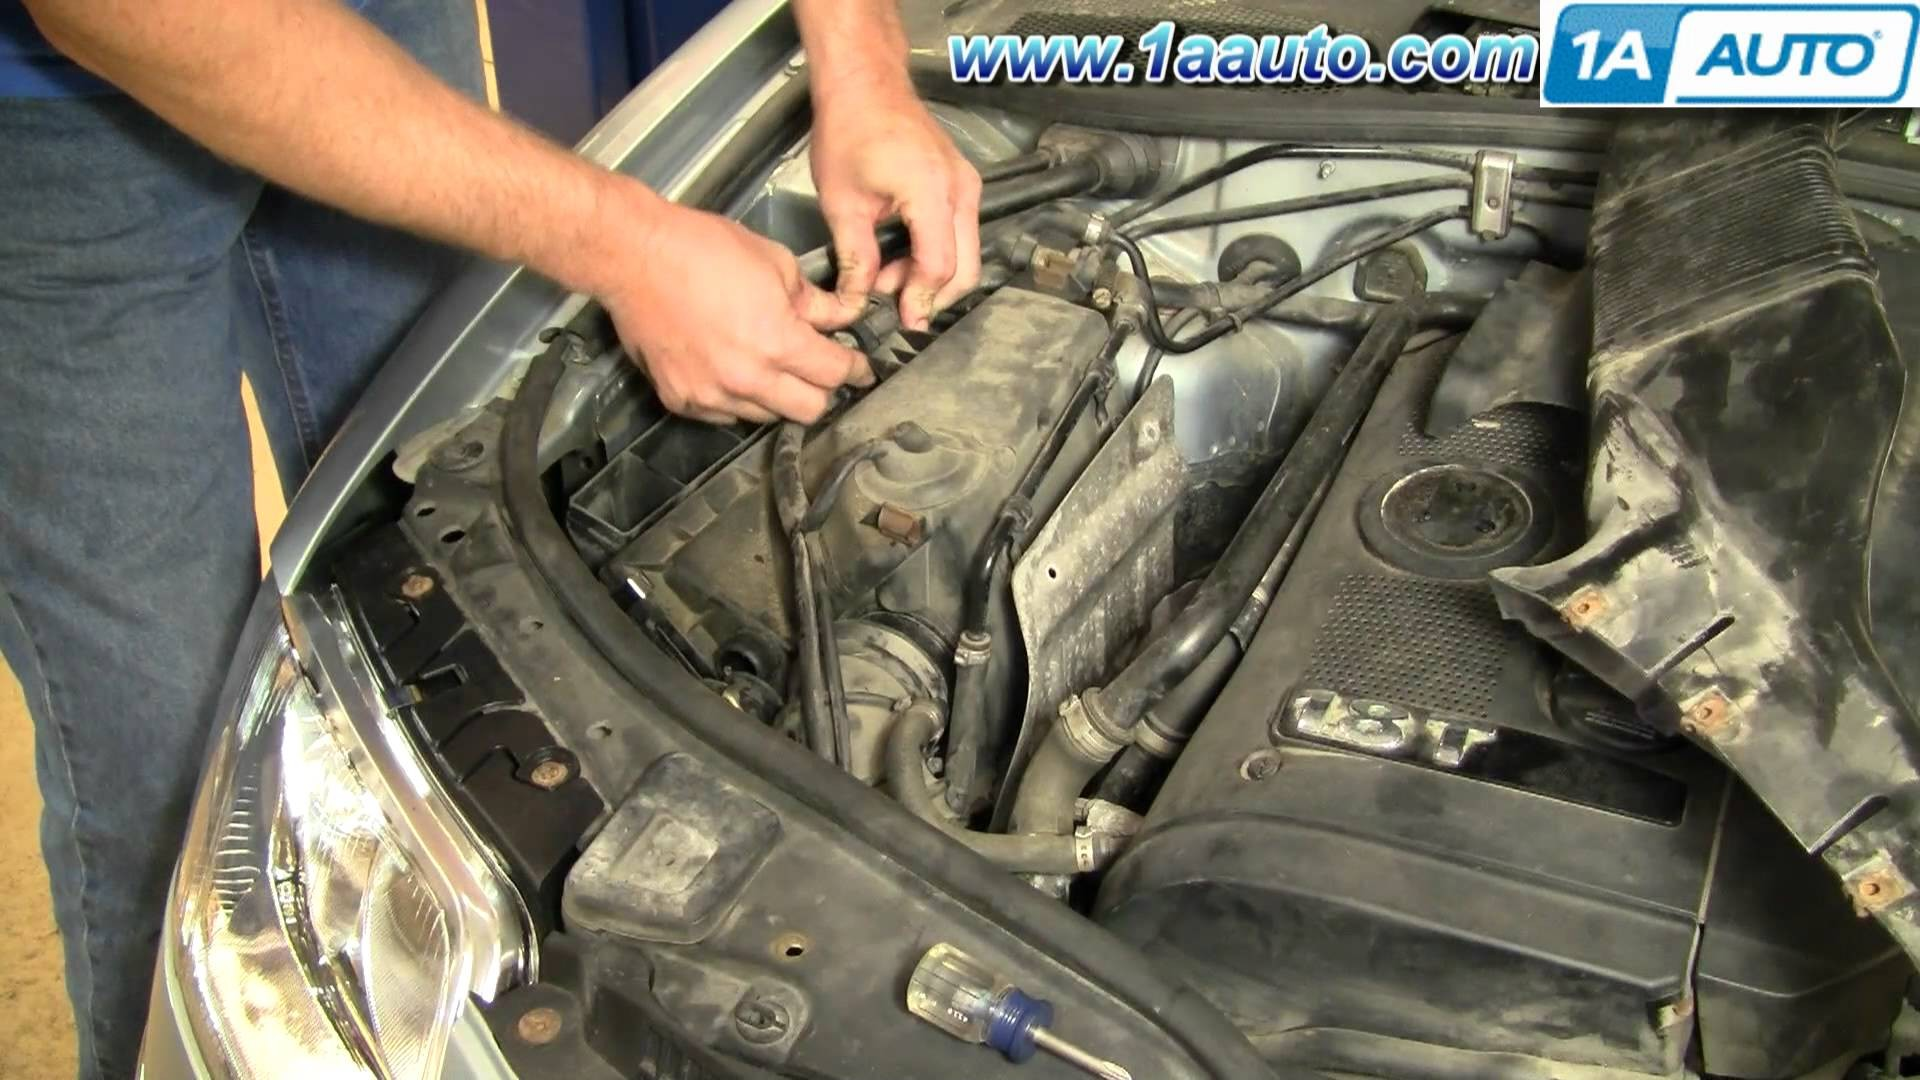 Vw Passat 1 8t Engine Diagram Search For Wiring Diagrams 2 8 T How To Install Replace Air Filter Rh Detoxicrecenze Com 2003 Audi A4 18t Vacuum 03 Volkswagen